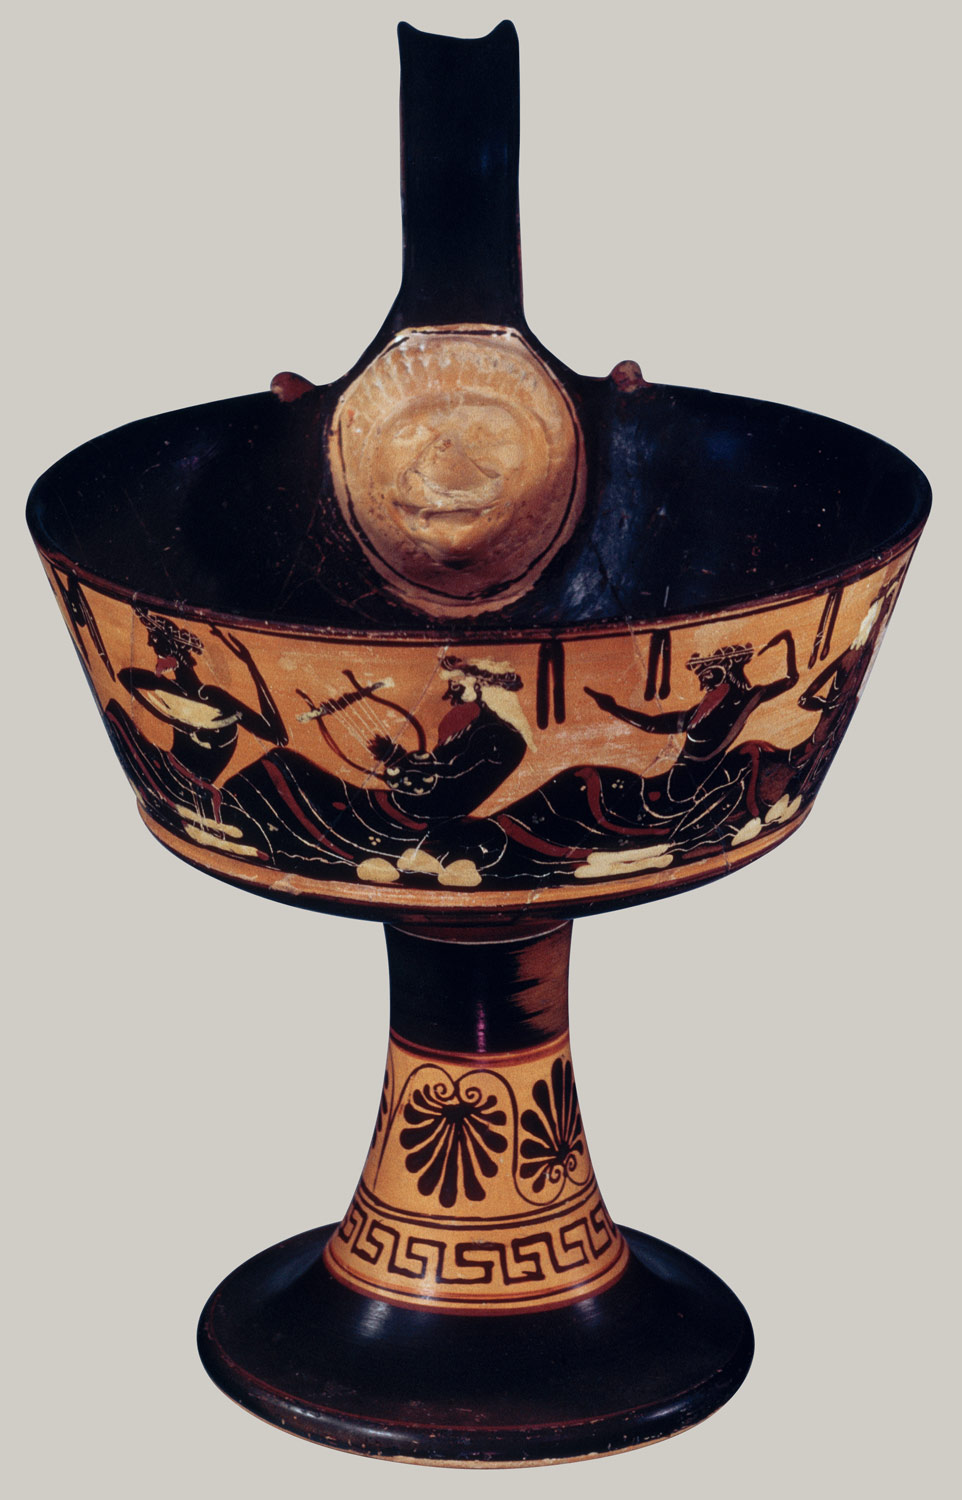 Terracotta one-handled kantharos (drinking cup)